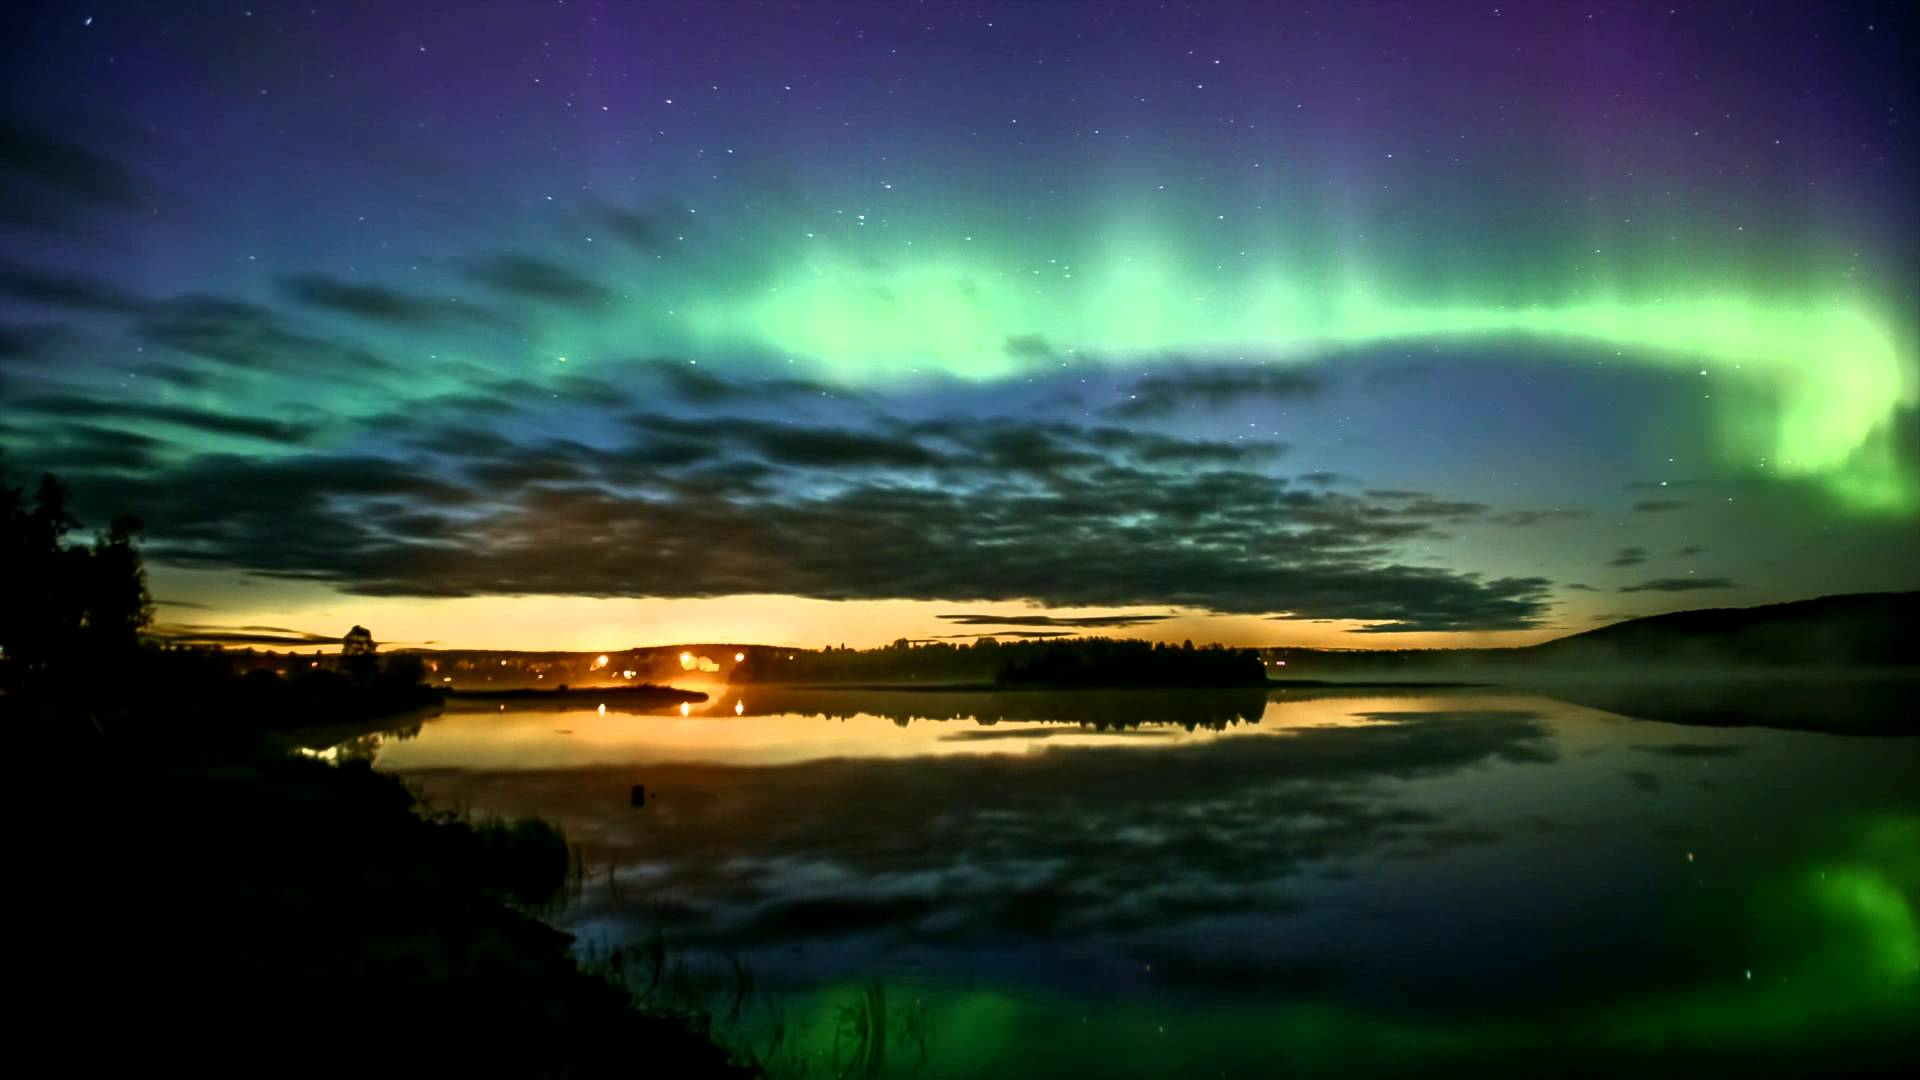 4k Fall Michigan Wallpaper Dazzling Video Of Northern Lights In Finland Fall 2015